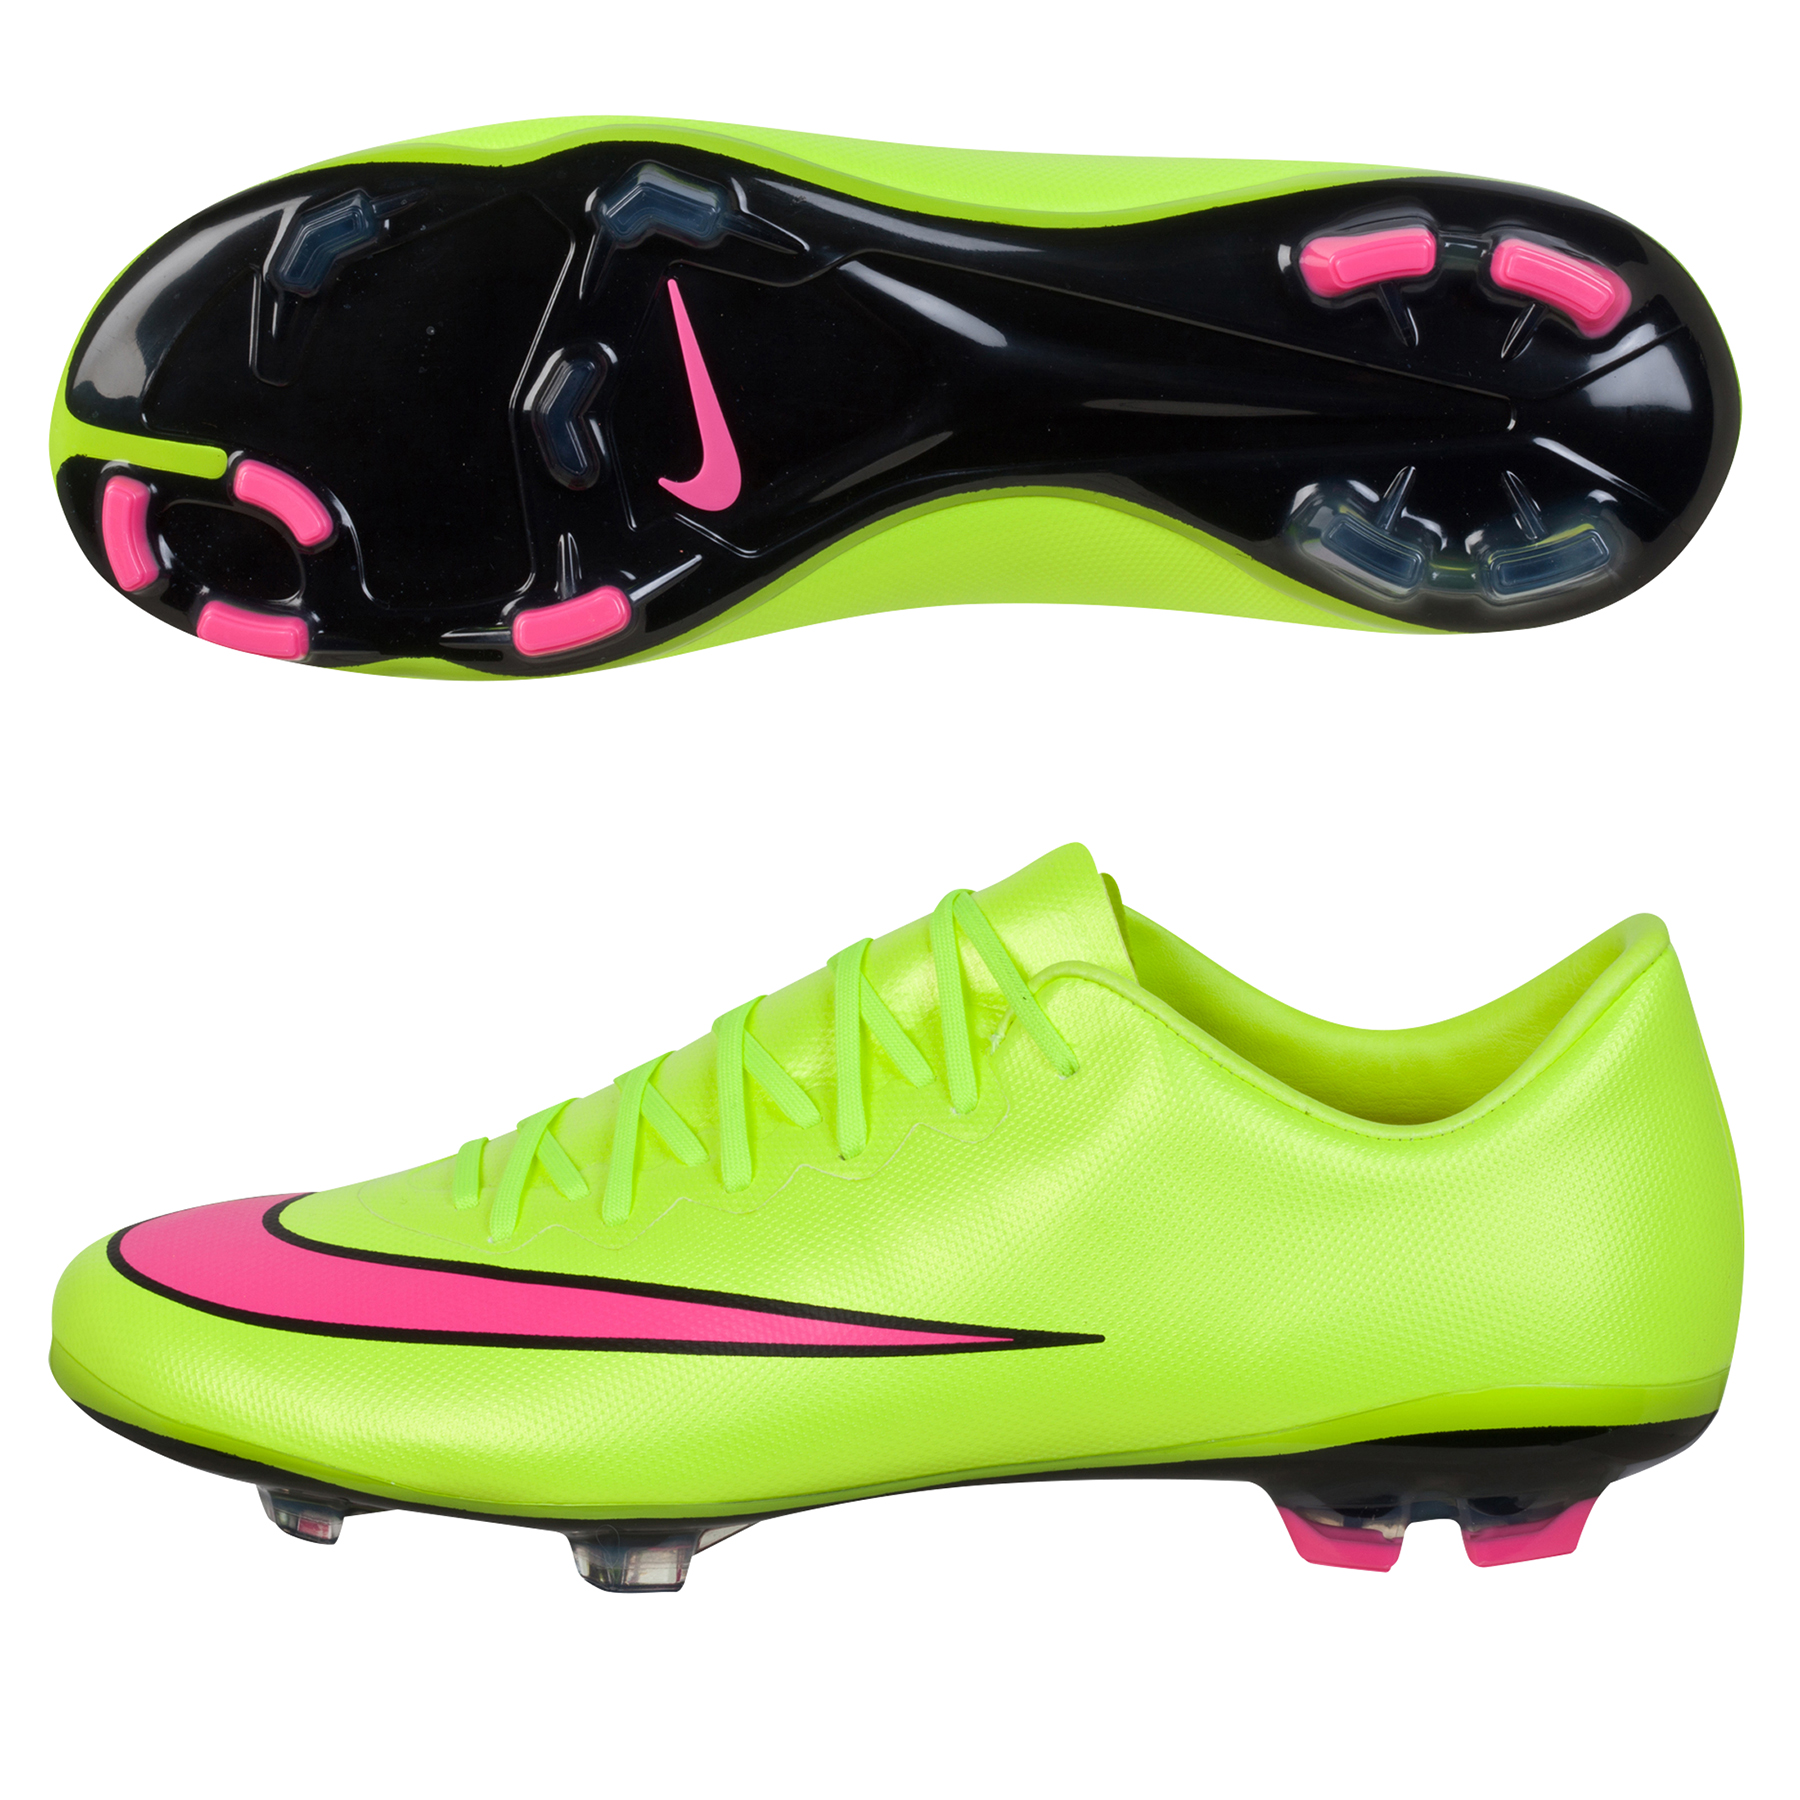 Nike Mercurial Vapor X Firm Ground Football Boots  Kids Yellow